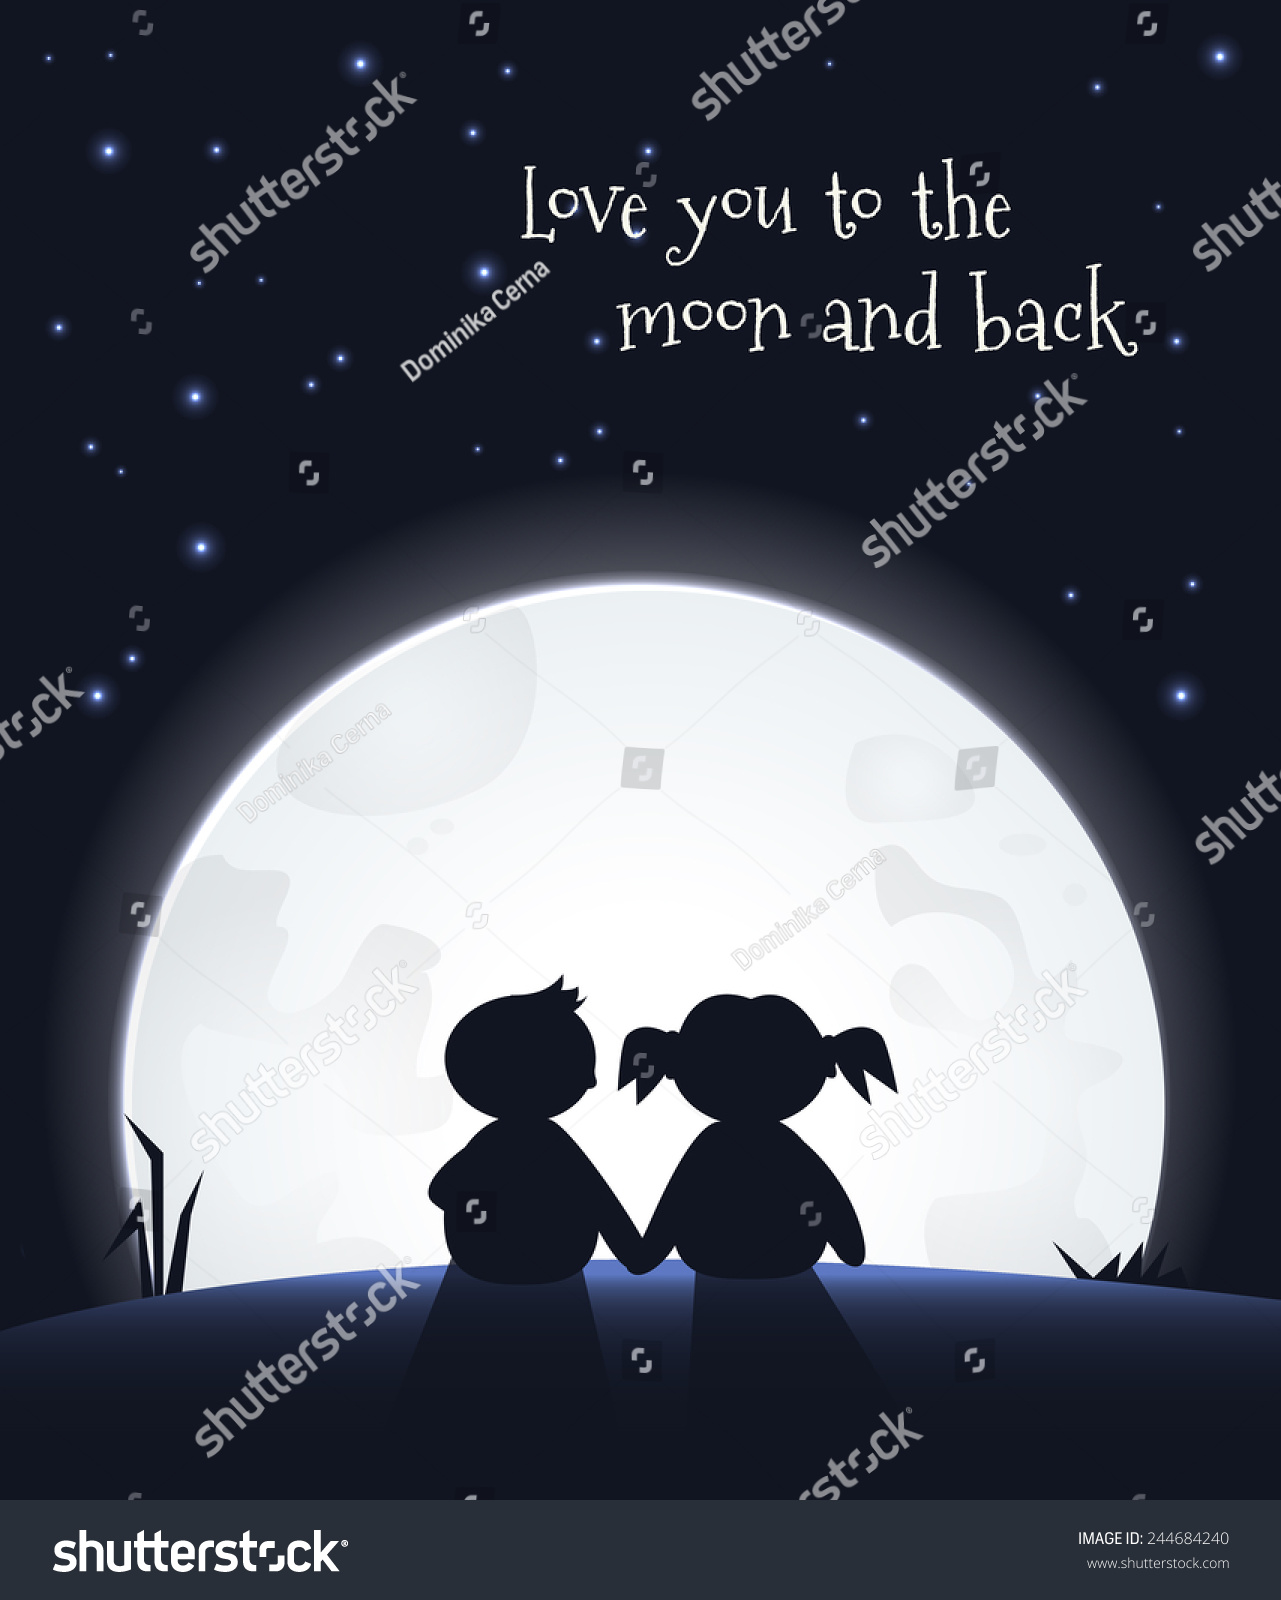 Love You Moon Back Love You Moon Romantic Quote Romantic Stock